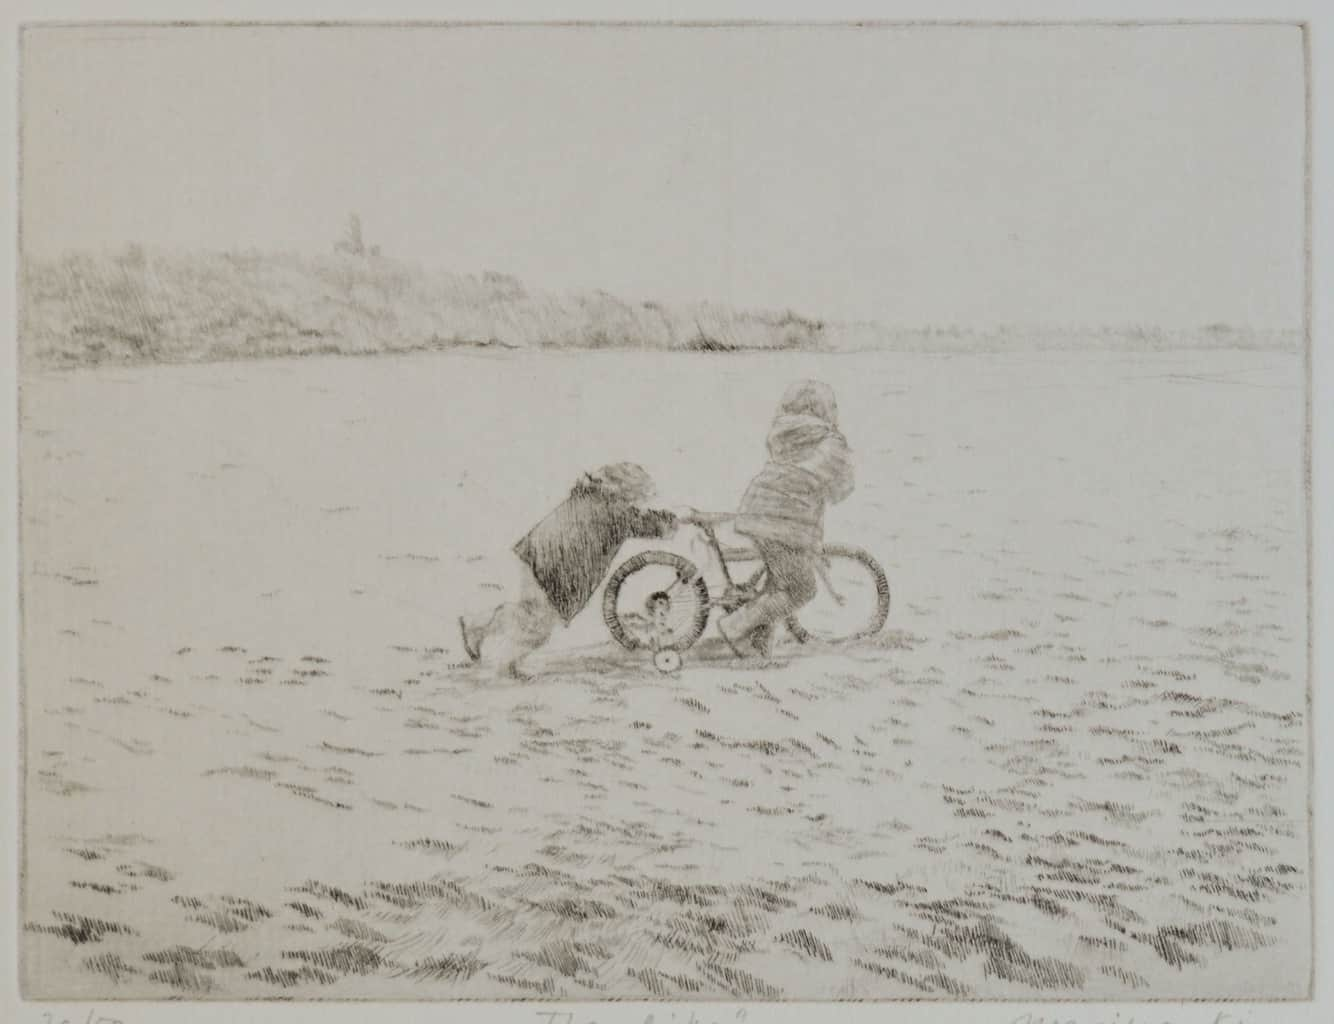 """""""The Bike"""" - drawing or two children pushing a bike up a grassy hillside. Original print drypoint by artist Marina Kim"""